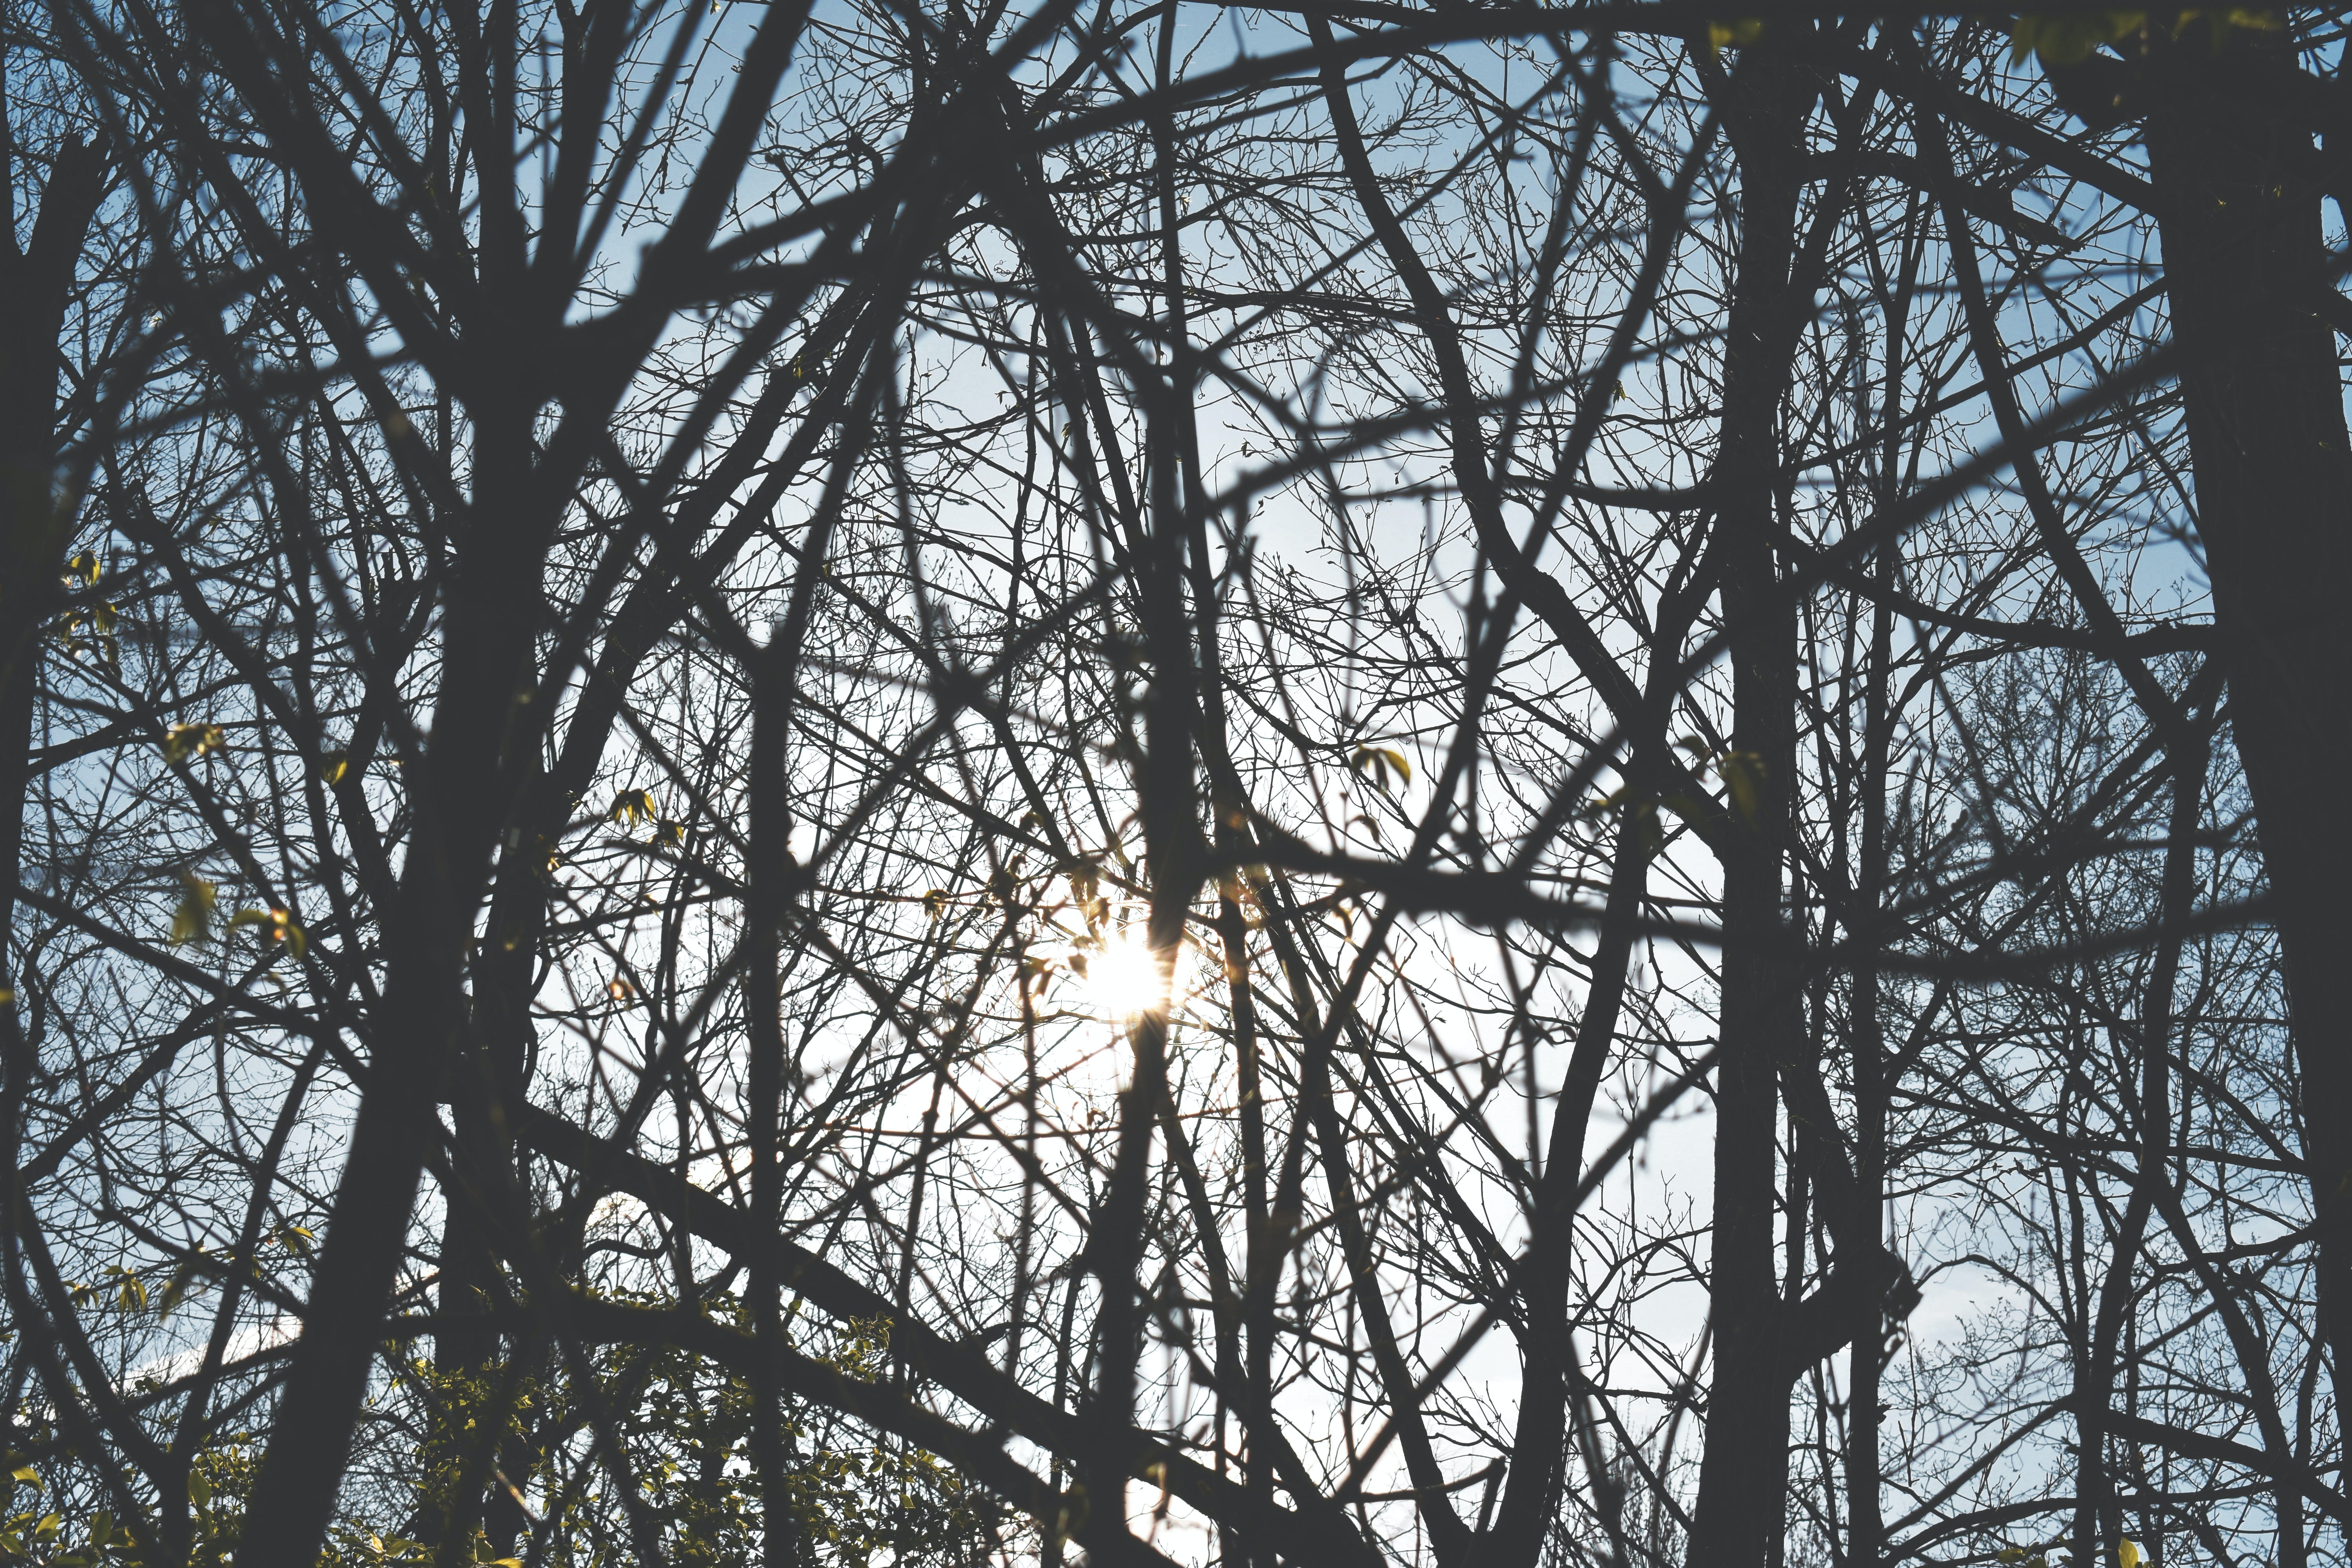 Free stock photo of #trees #woods #sun #summer #spring